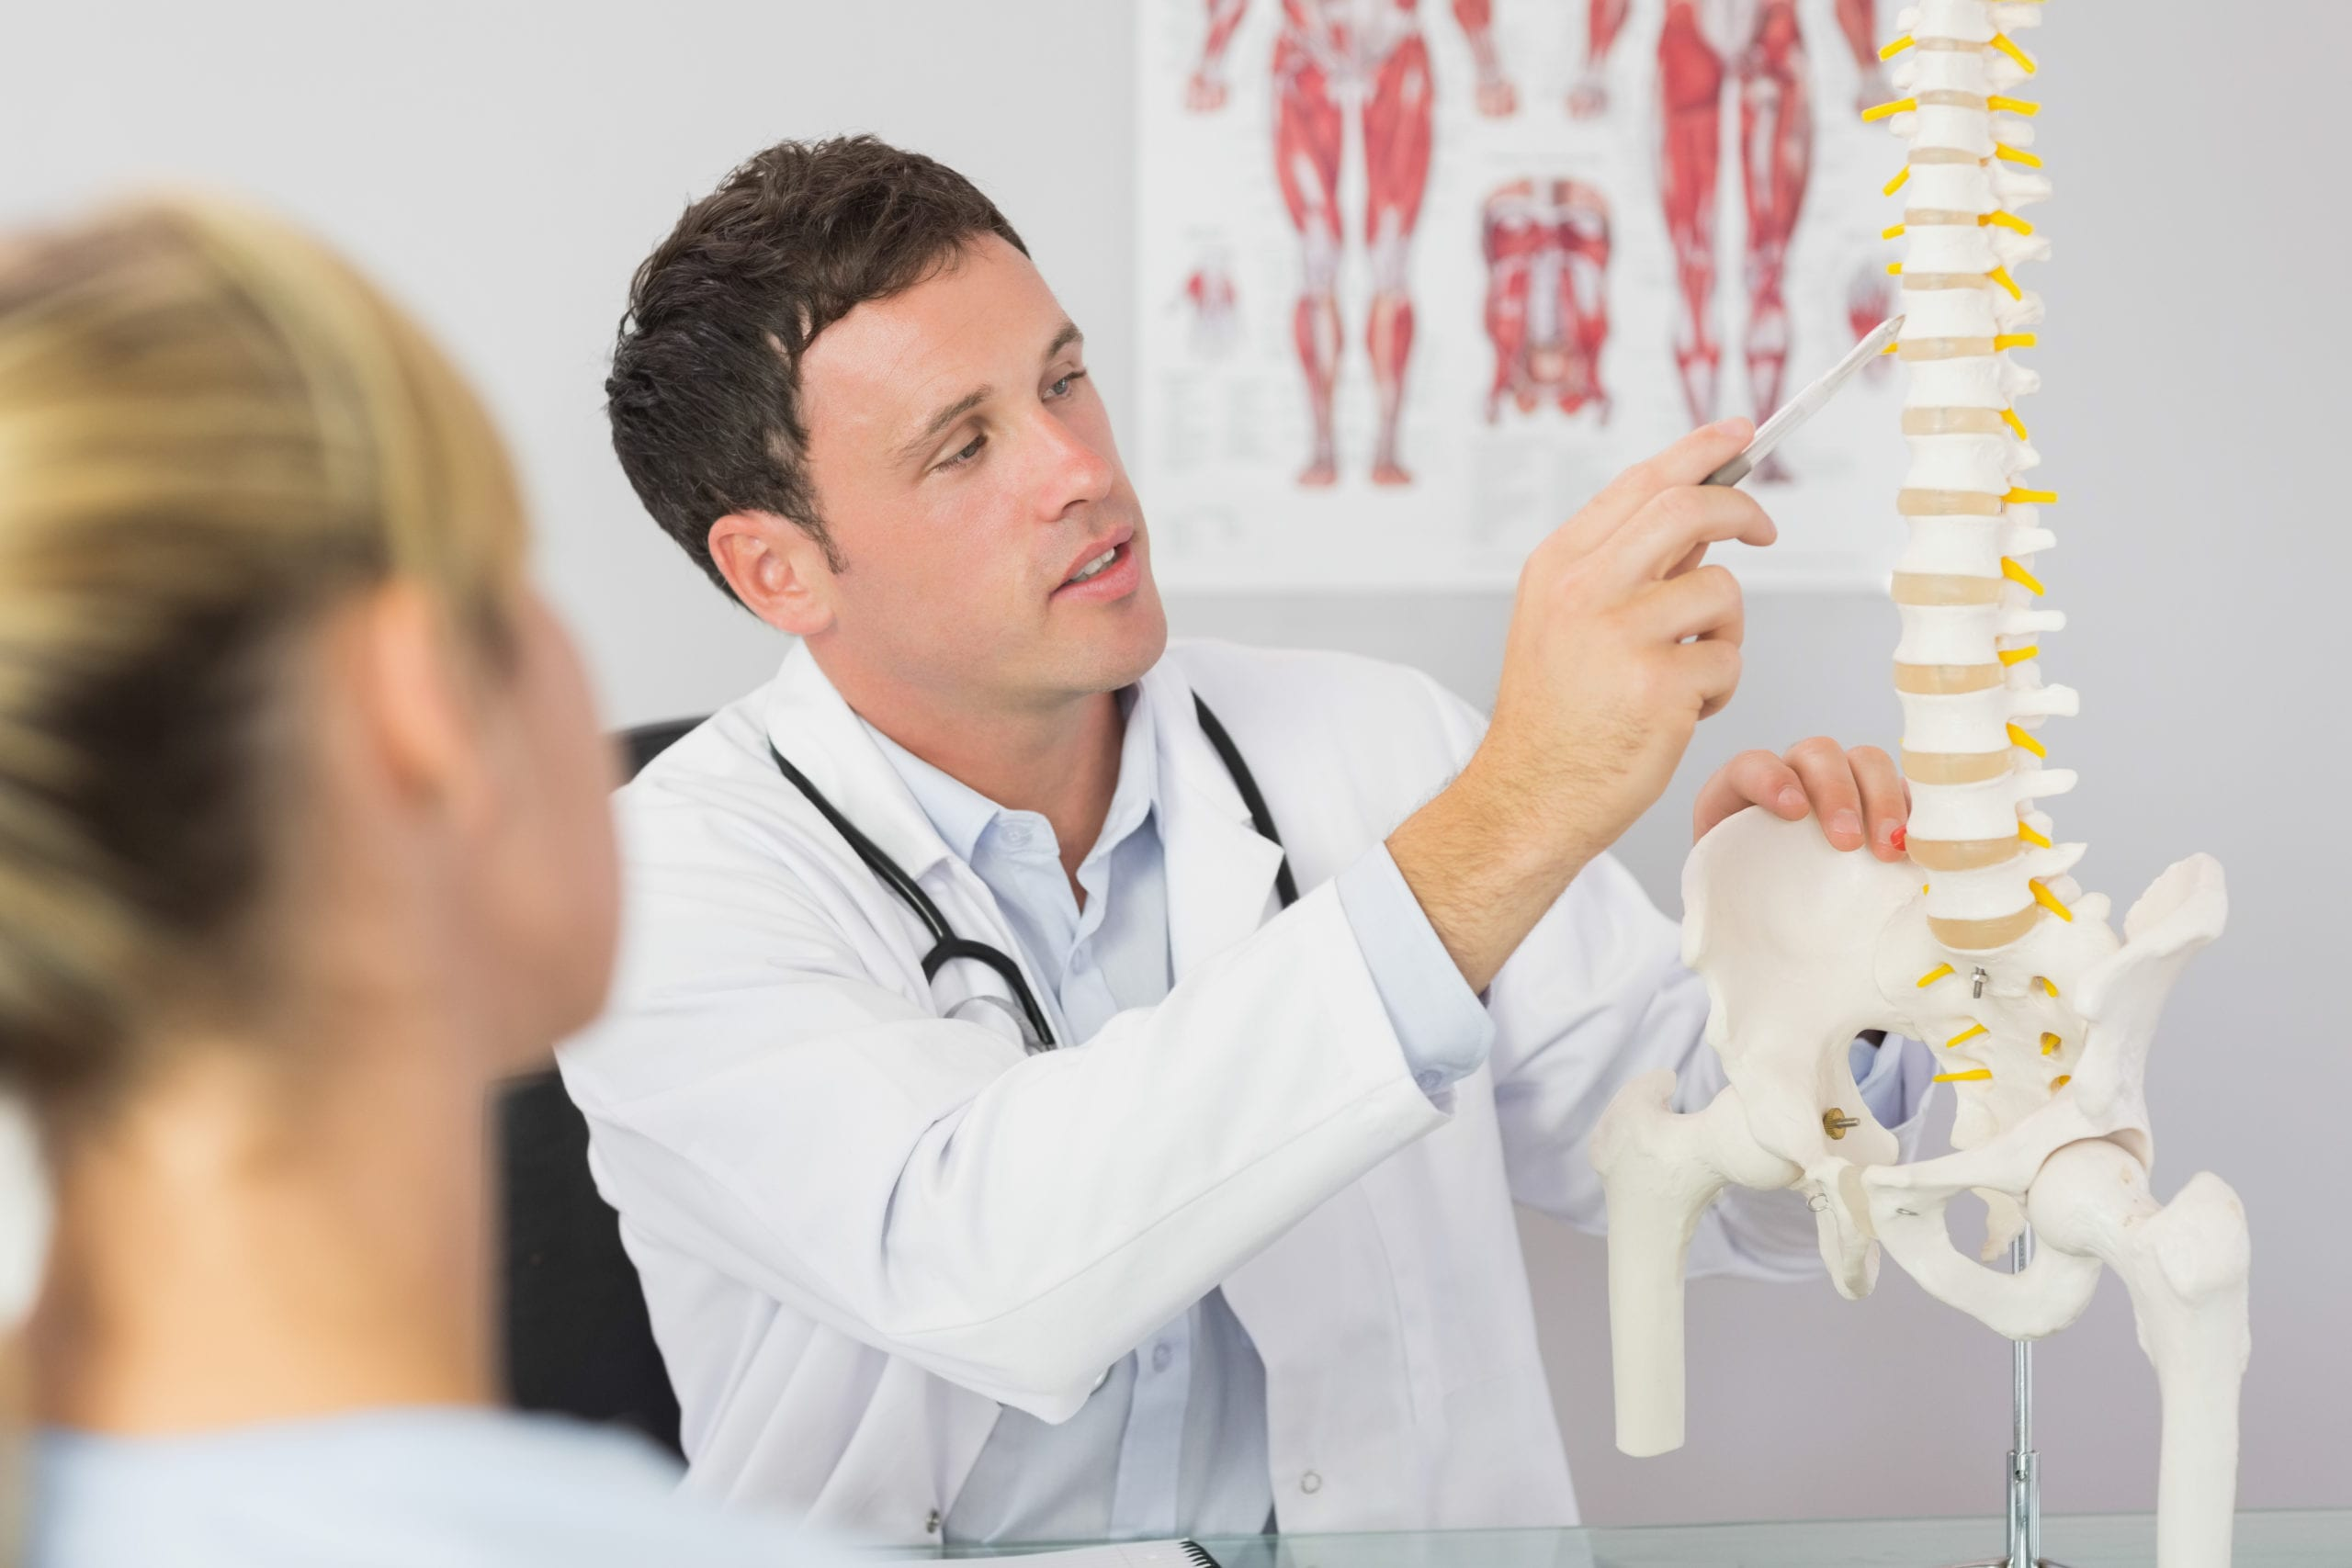 chiropractor with patient showing skeleton model